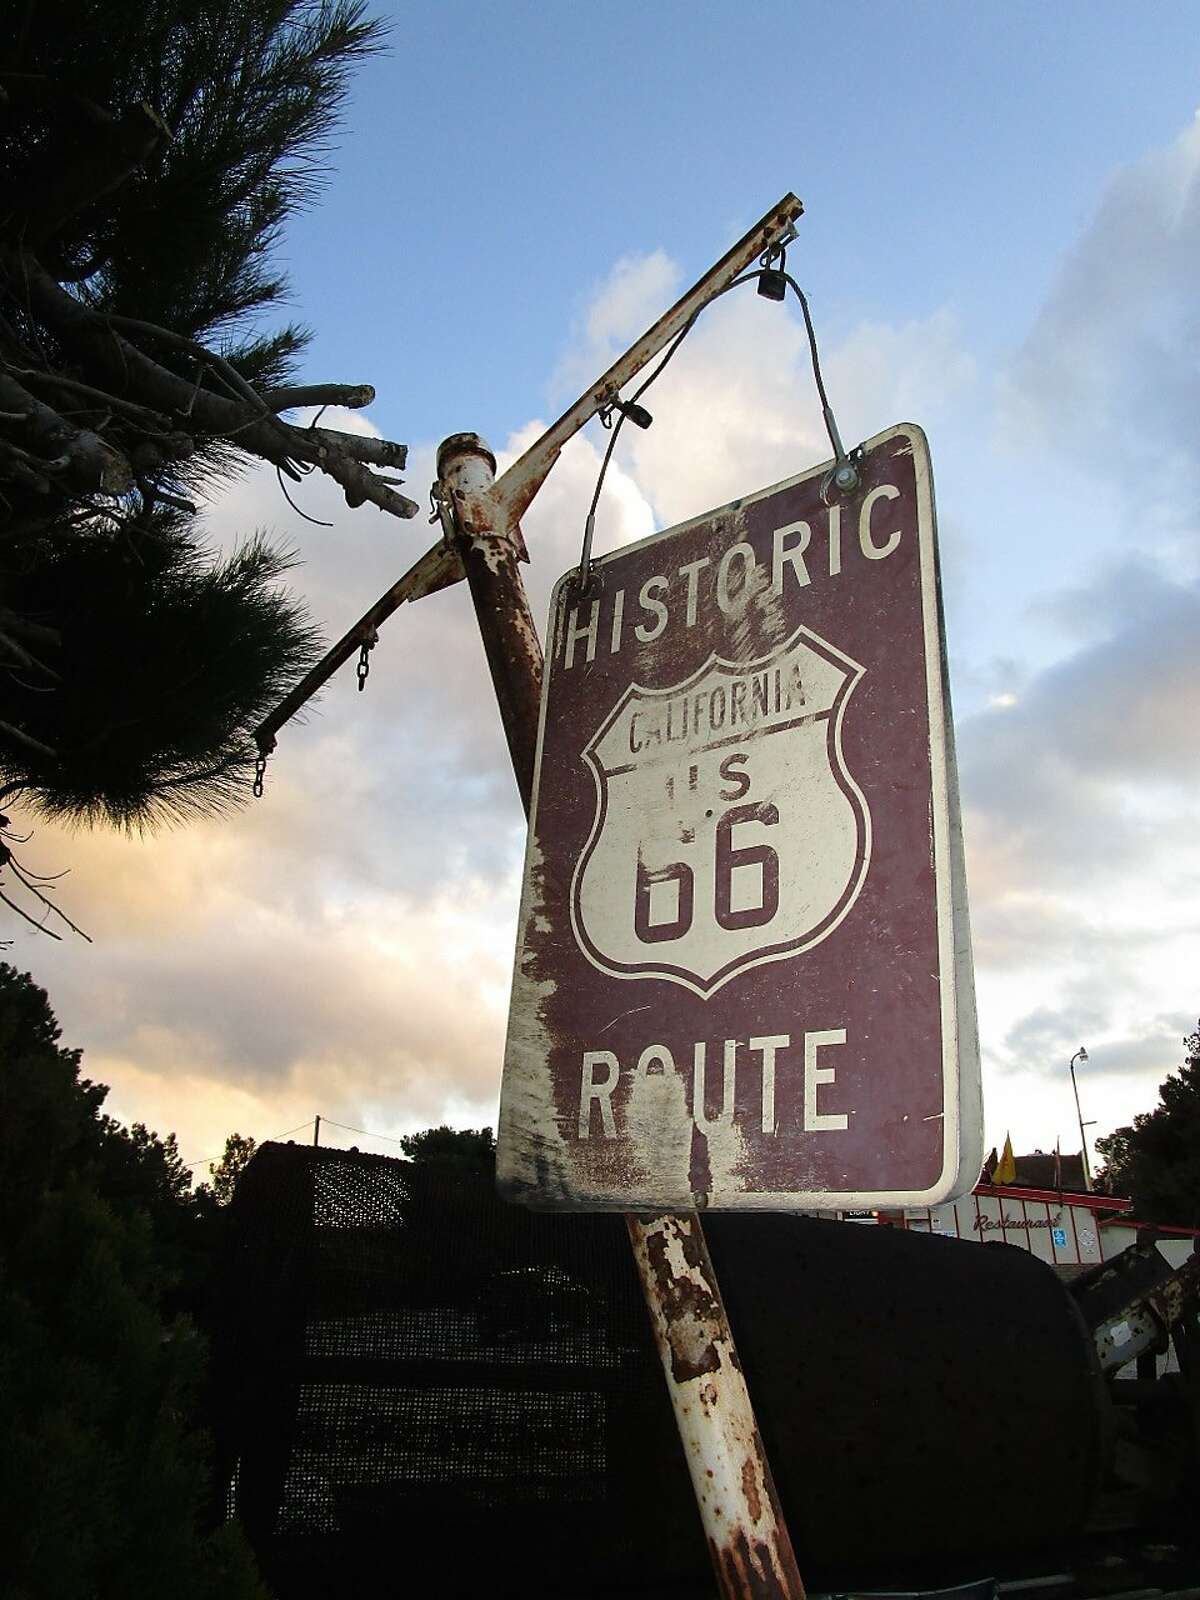 This undated photo provided by the American Indian Alaska Native Tourism Association shows the Route 66 sign near the historic Summit Inn at the end of Cajon Pass in California. The association is releasing a guidebook that details more than two dozen tribal communities along America's Mother Road. (Lisa Snell/American Indian Alaska Native Tourism Association via AP)